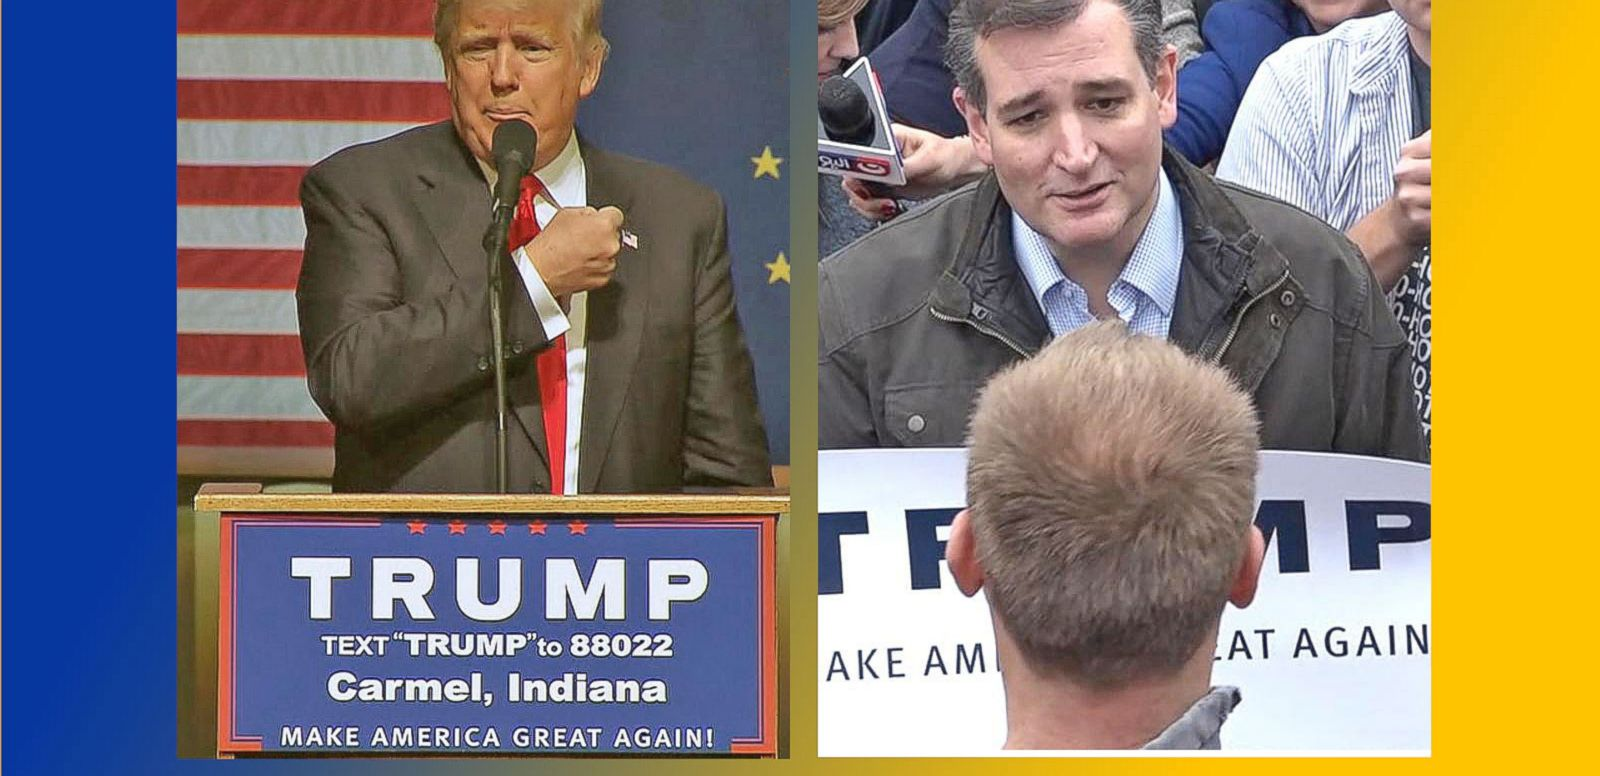 VIDEO: Battle for Indiana, Last Stand for Senator Ted Cruz?